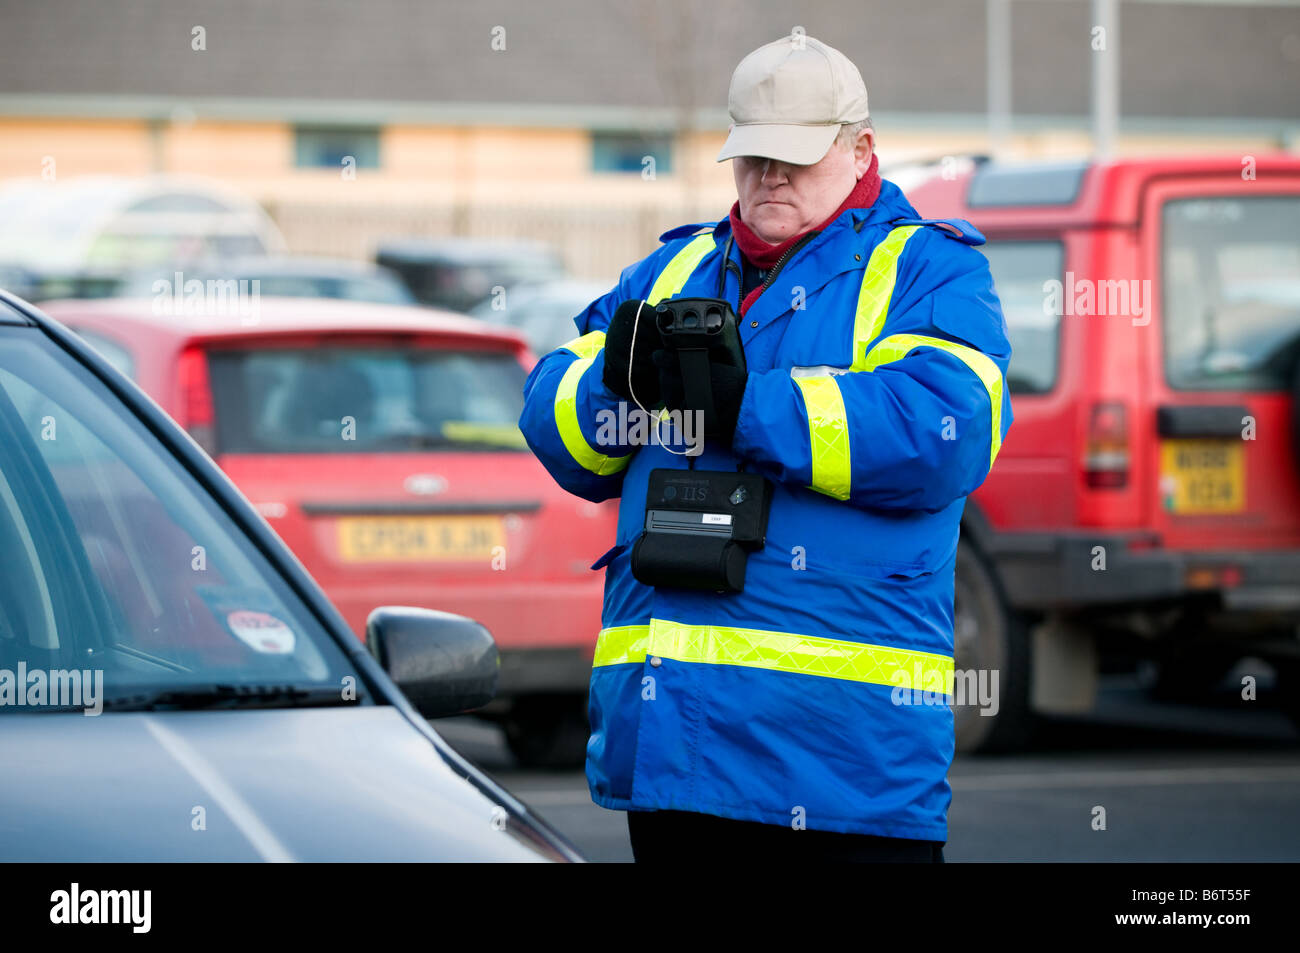 A private car park attendant wearing blue jacket taking the details of a car parked in his electronic notebook, Stock Photo